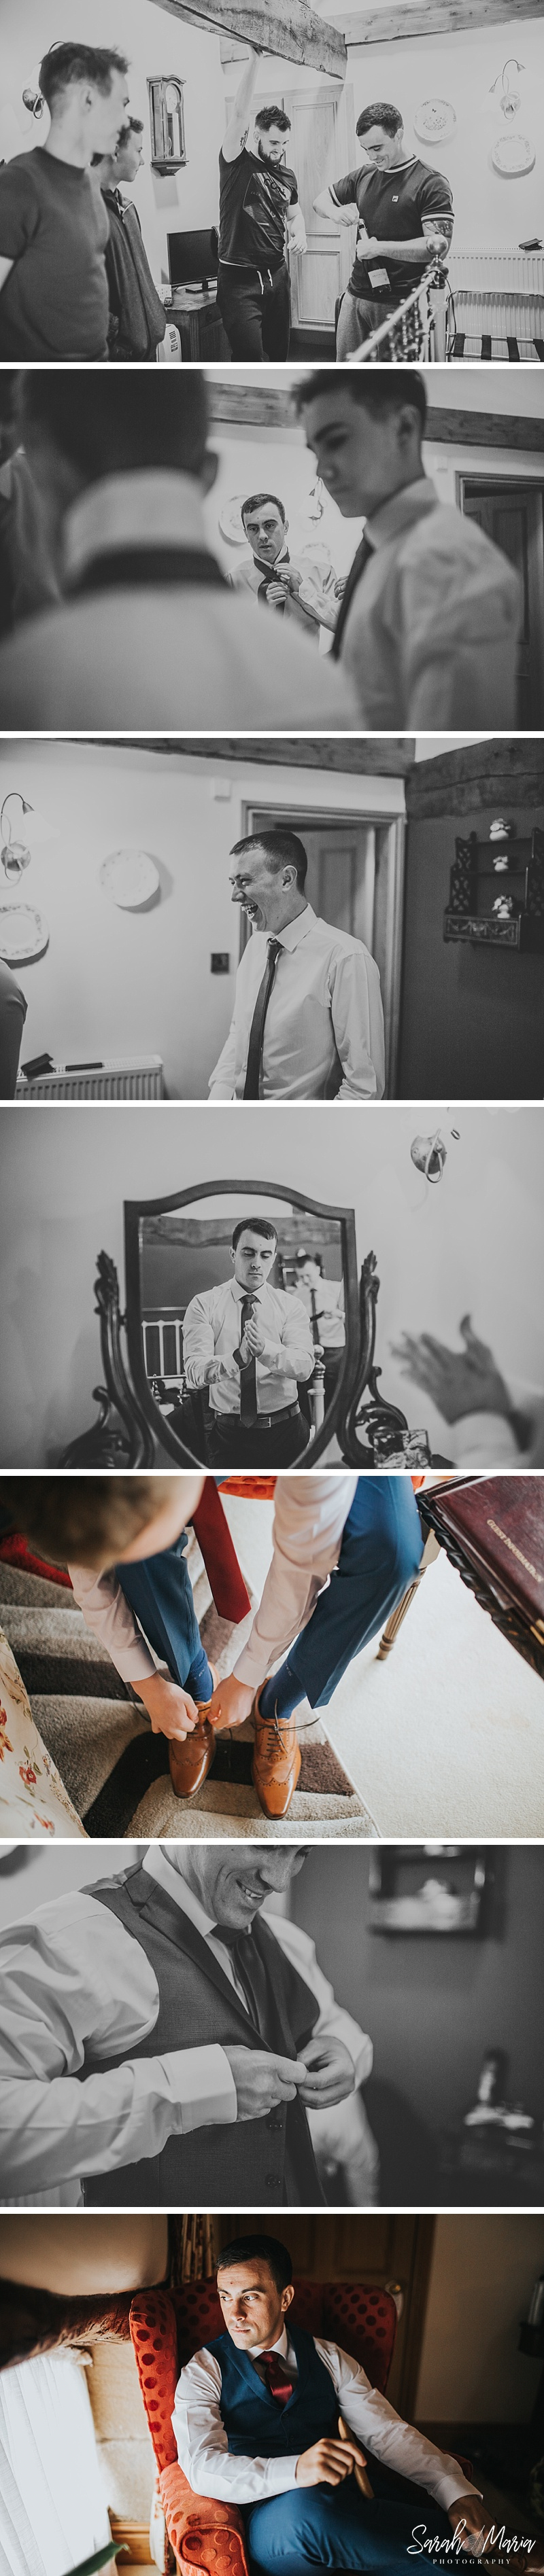 photographs of the grooms party getting ready at their wedding venue